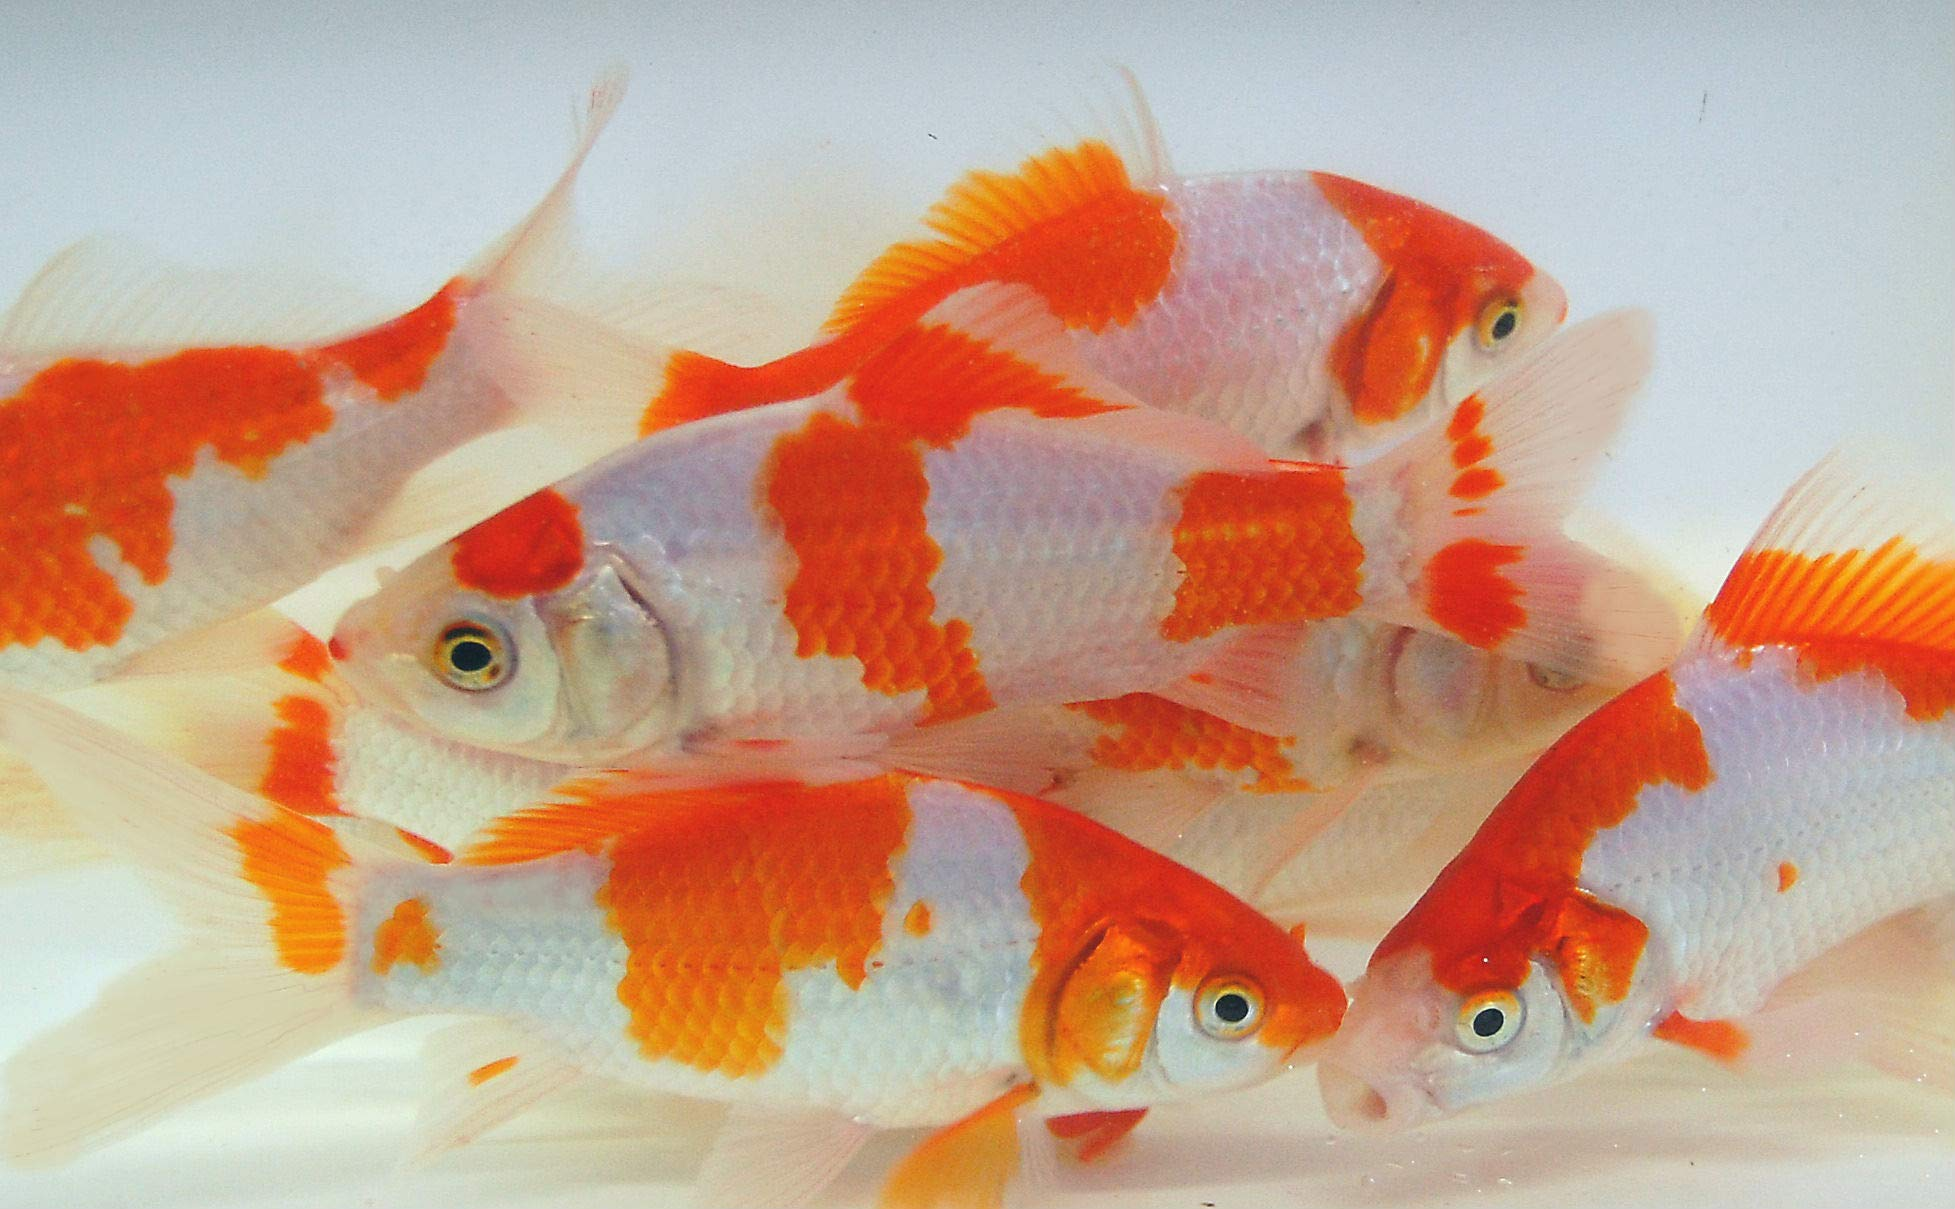 Live Sarasa Goldfish for Aquariums, Tanks, or Garden Ponds - Live Red and White Commons - Born and Raised in The USA - Live Arrival Guarantee (4 to 5 inches, 10 Fish) by Toledo Goldfish